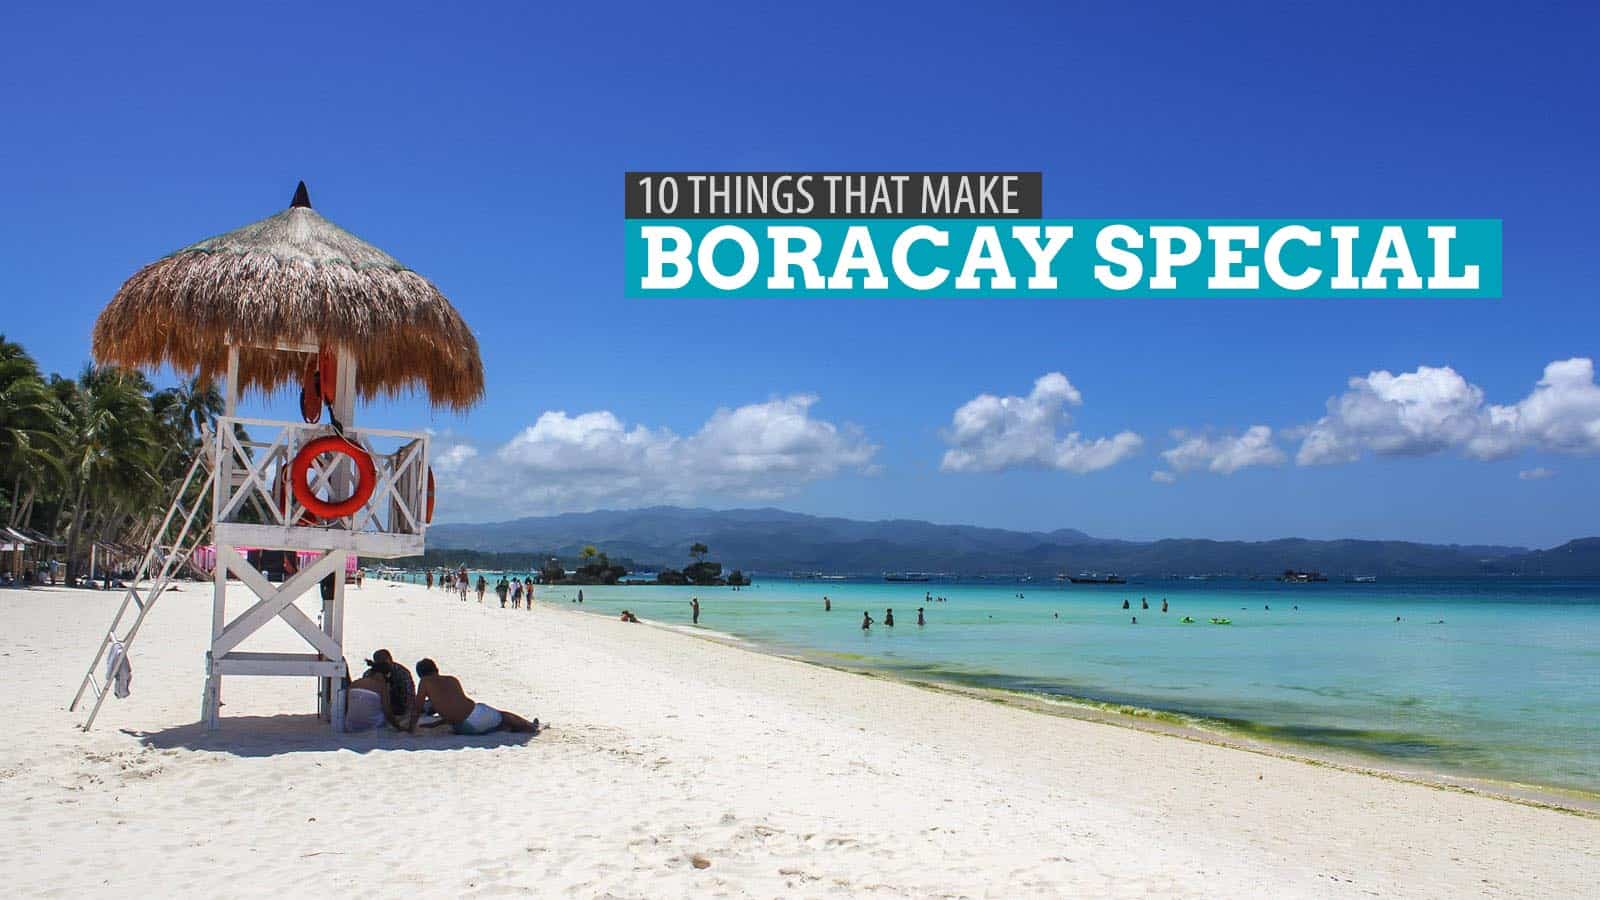 10 Things that Make Boracay Special: Aklan, Philippines